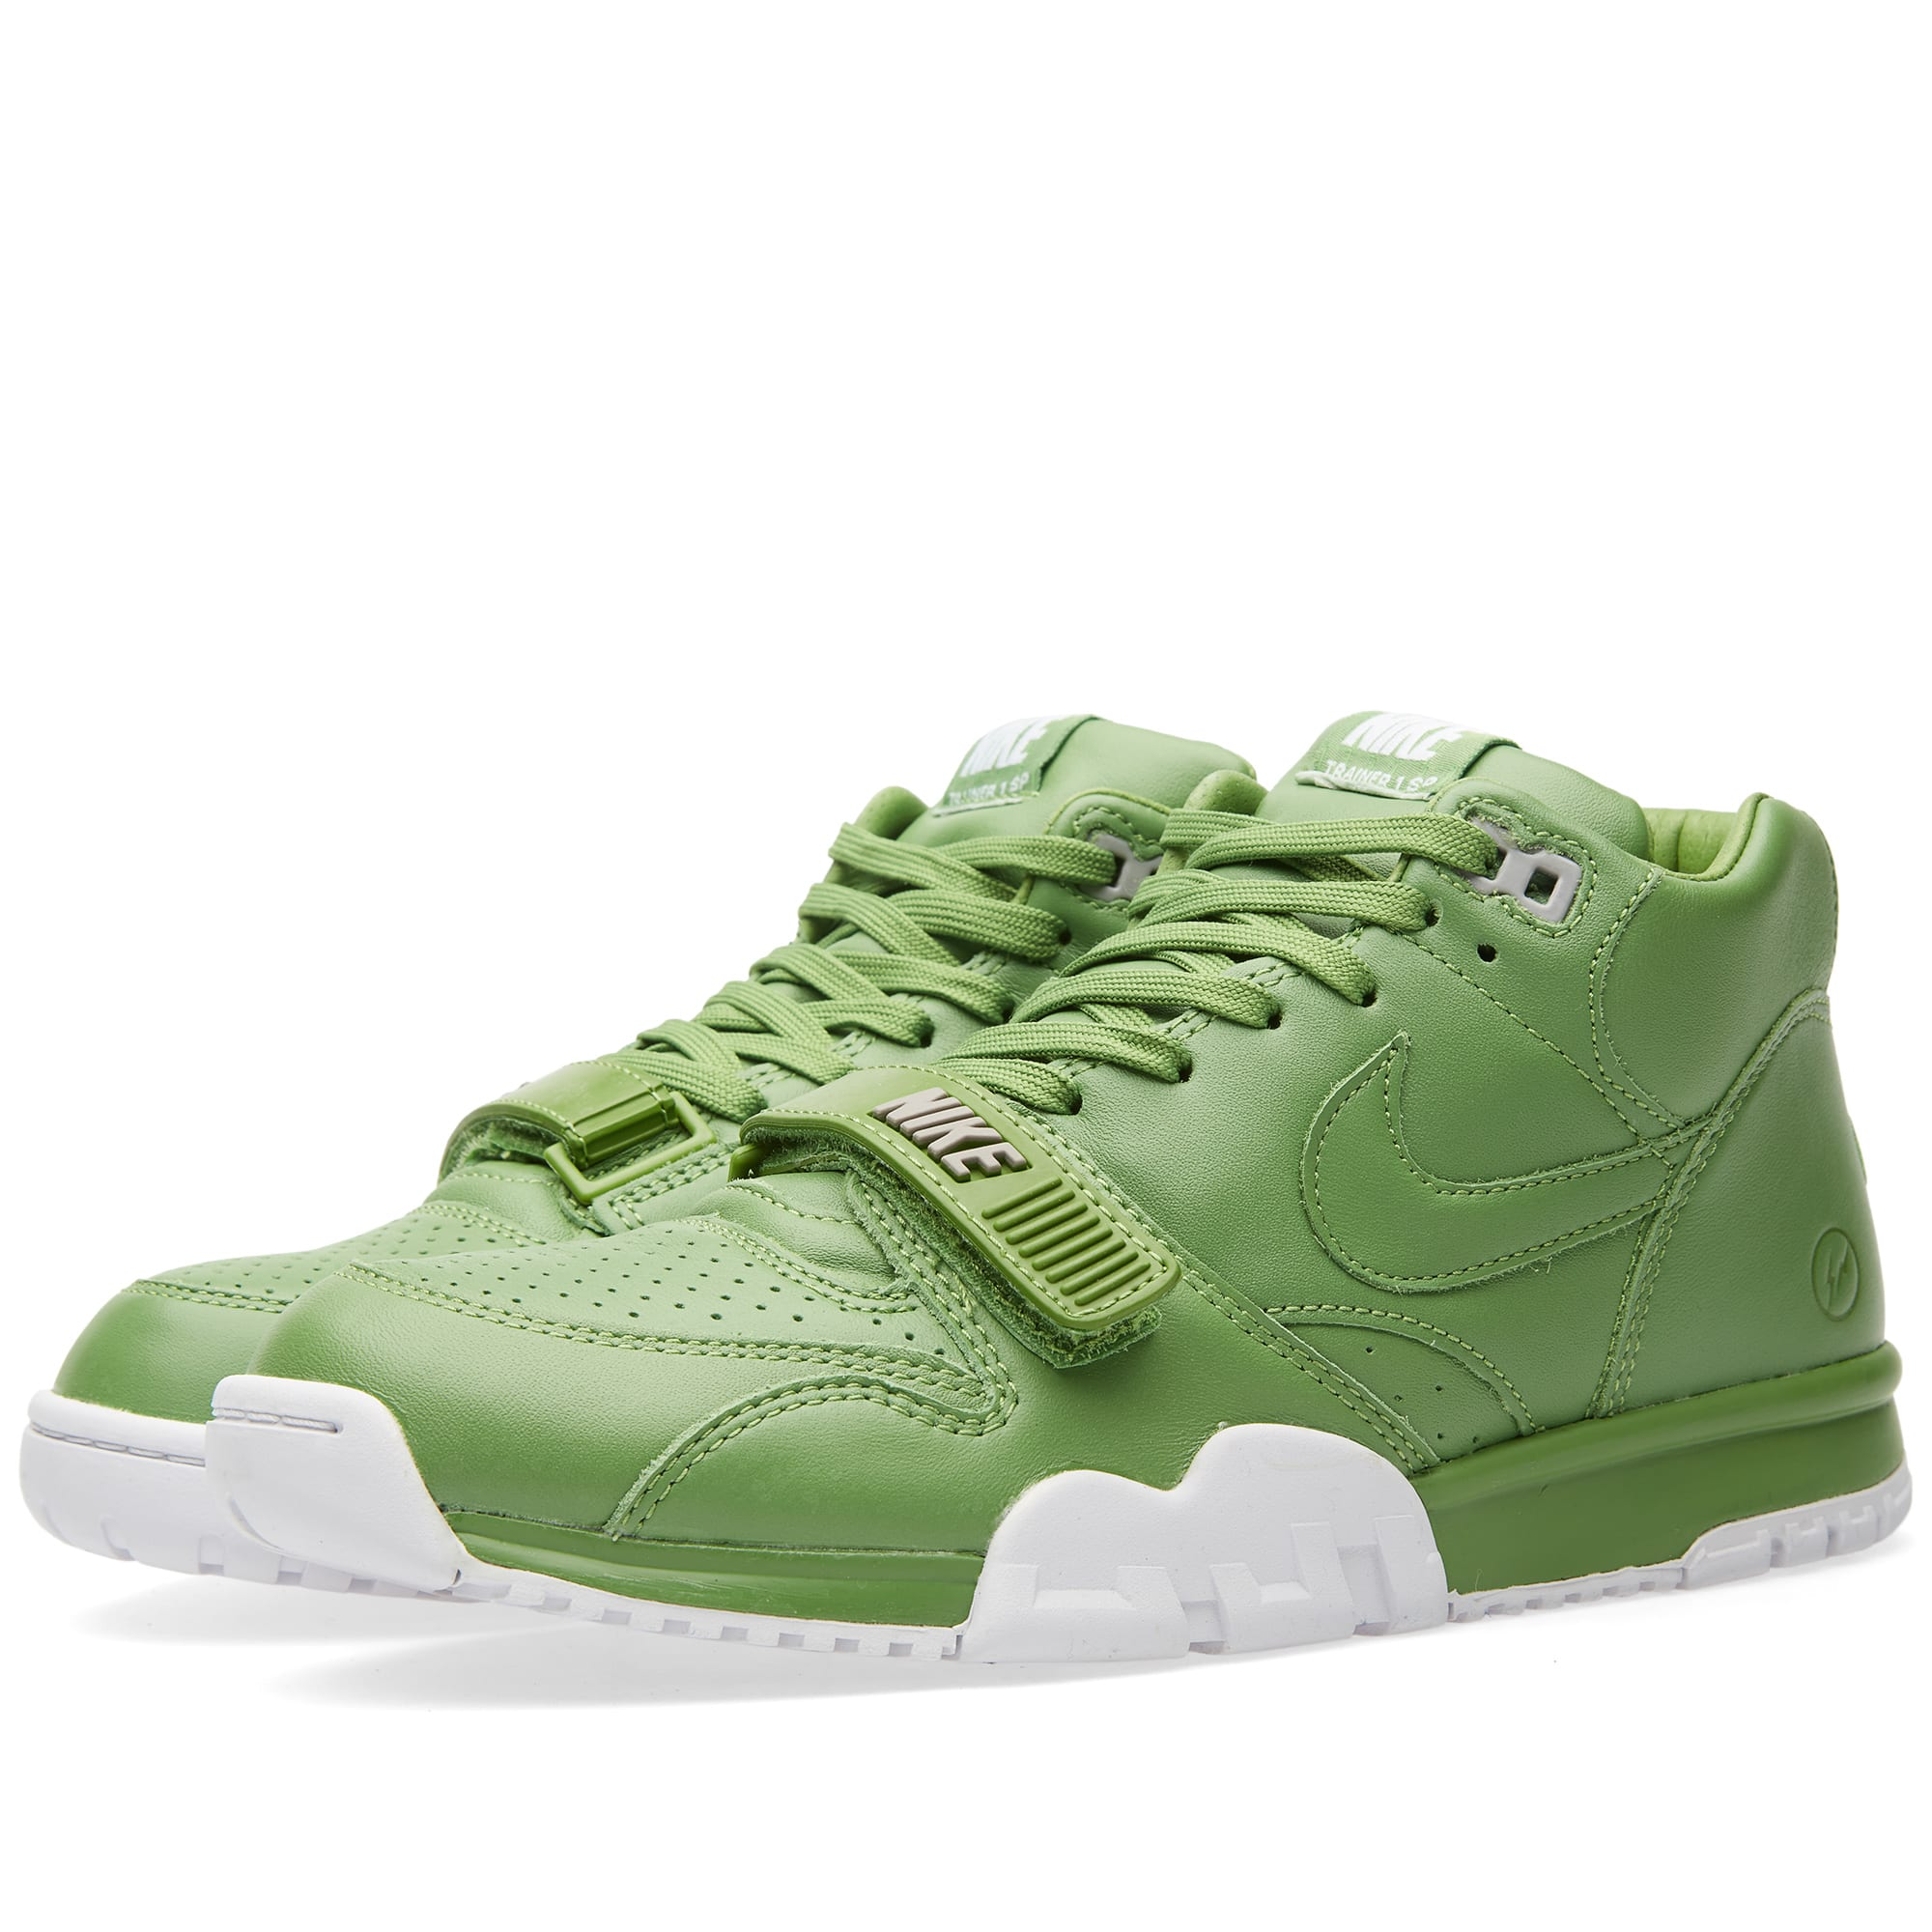 size 40 43437 a7bce Nike x Fragment Design Air Trainer 1 Mid SP Chlorophyll & White | END.